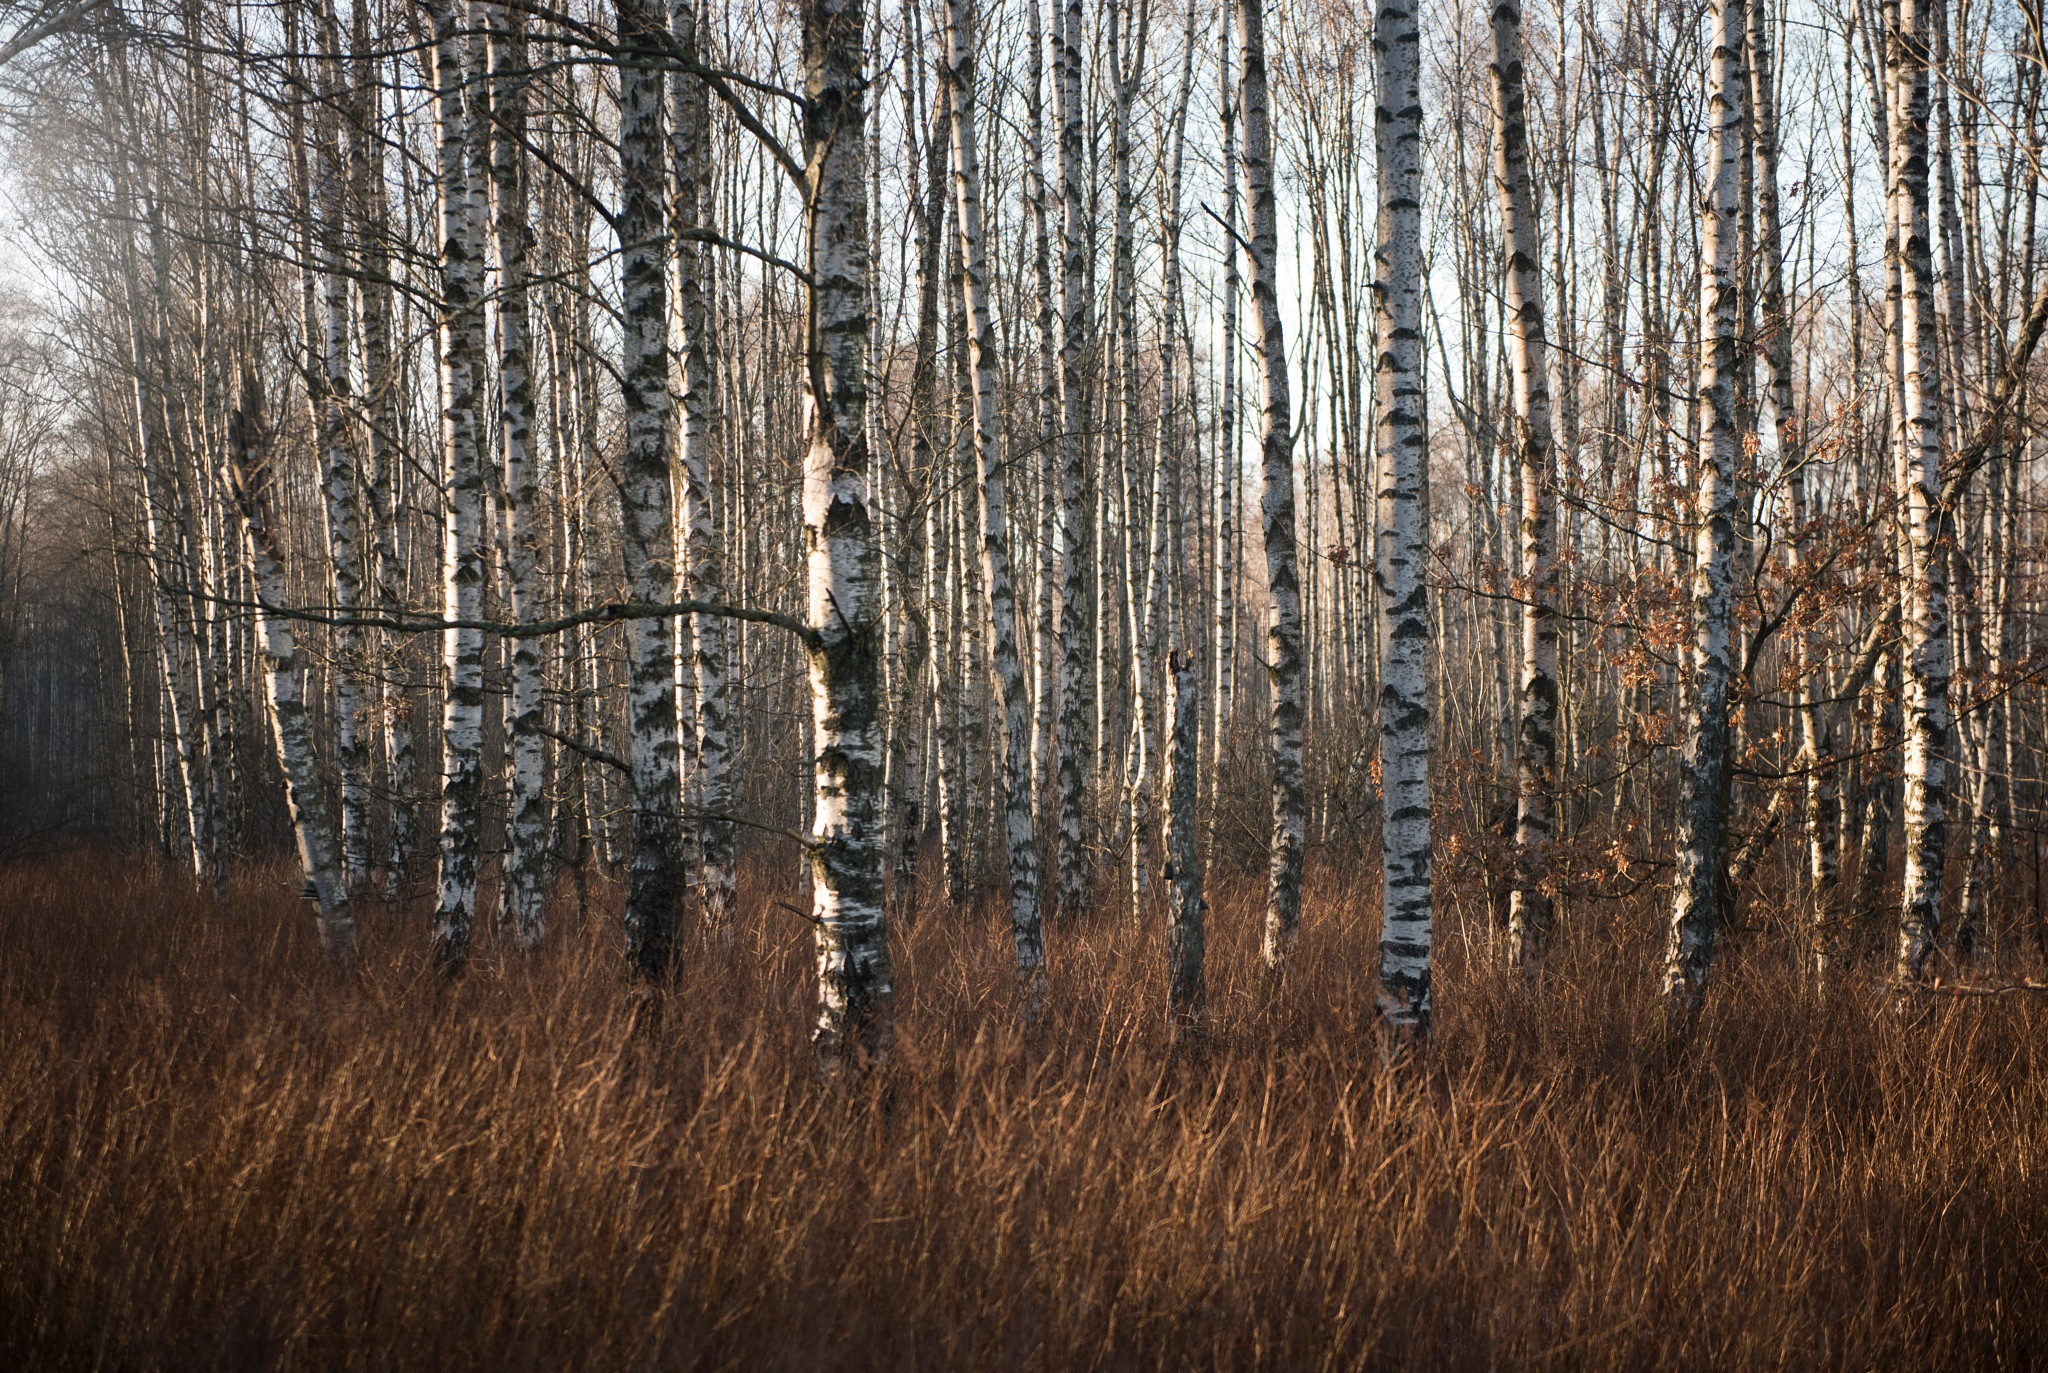 Birch trees by Linda Persson